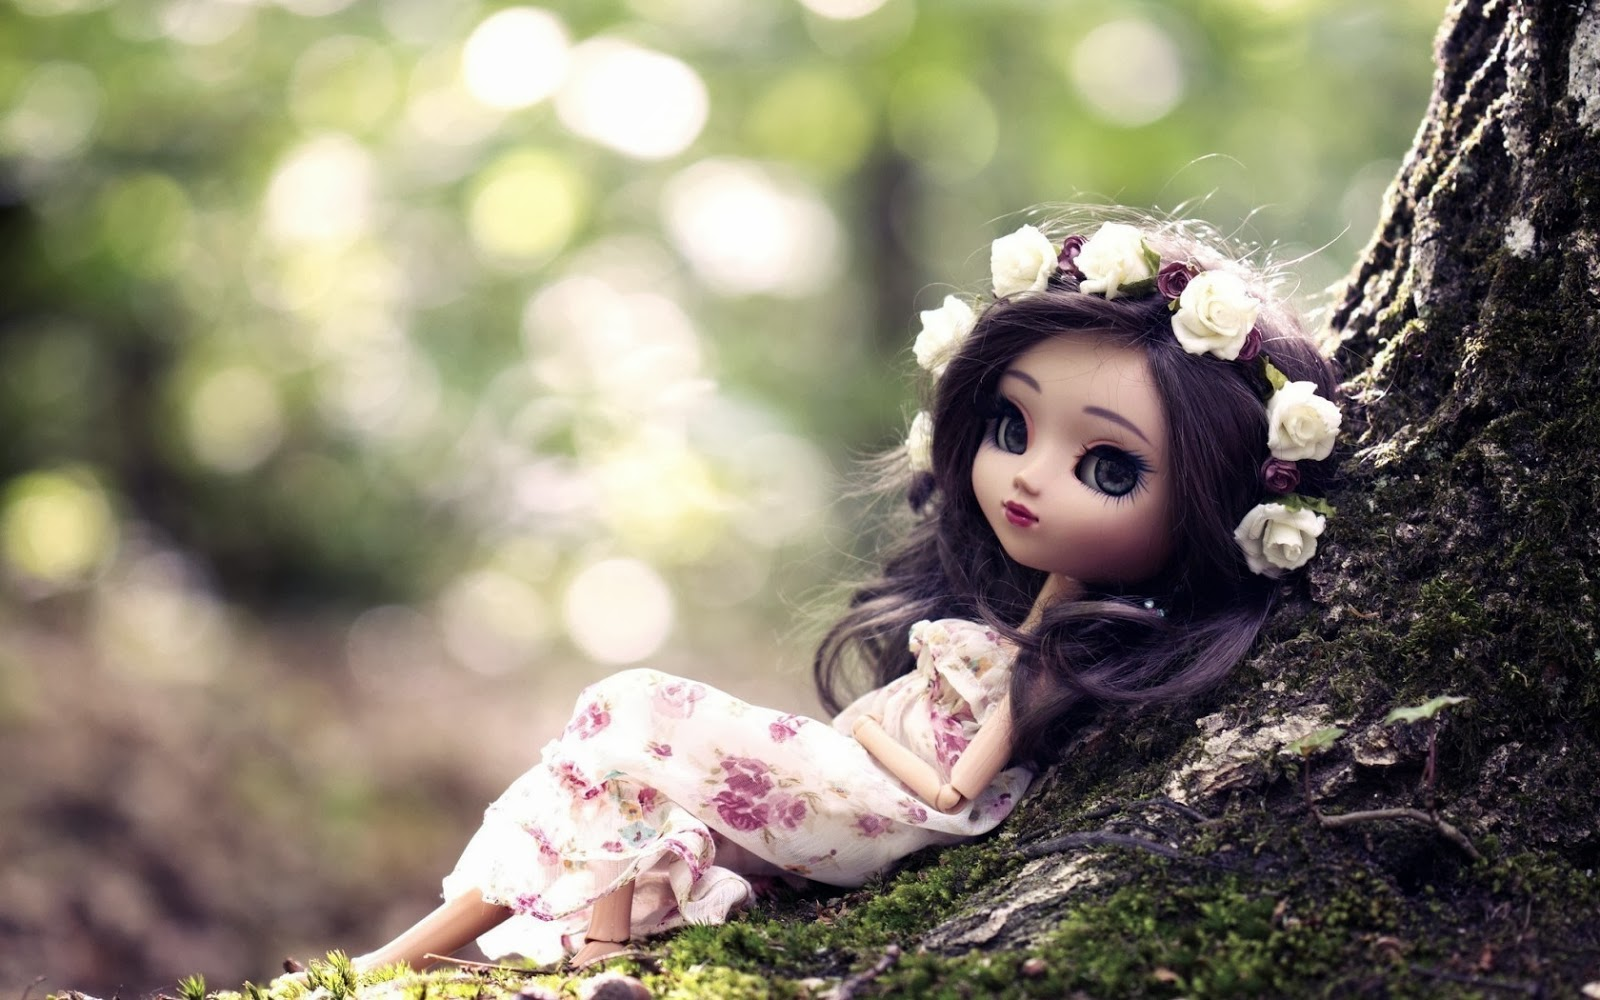 HD Wallpapers Cute Dolls 2014 HD Wallpaper HD wallpapers are situated 1600x1000